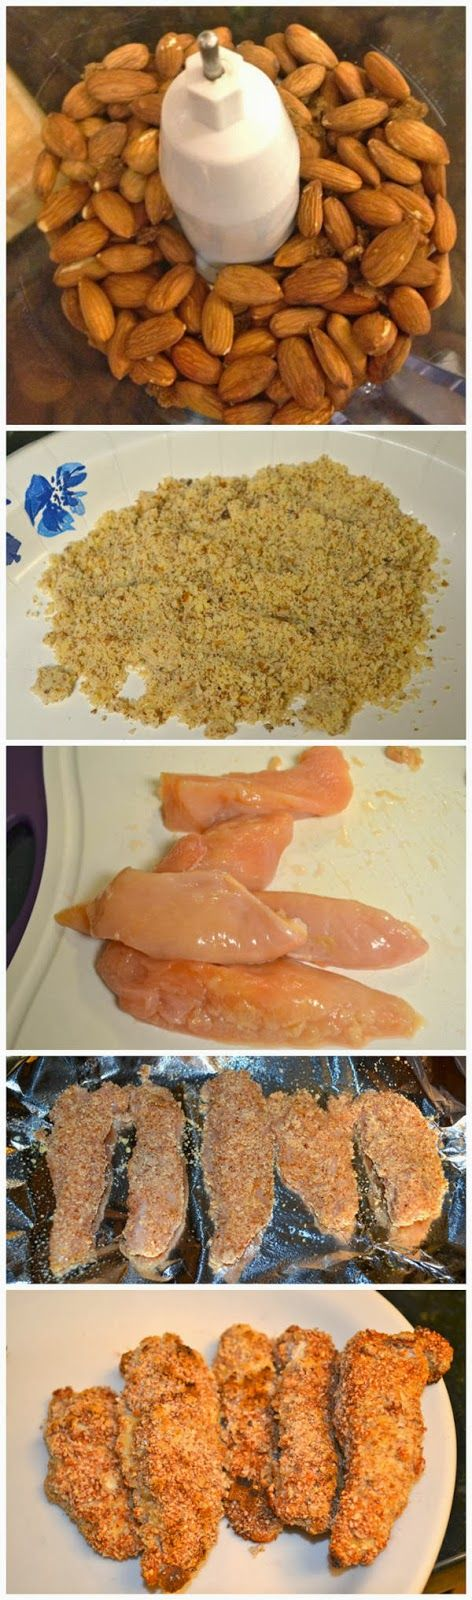 Almond Crusted Chicken Tenders - like frozen chicken tenders, serve with ketchup...quick meal.